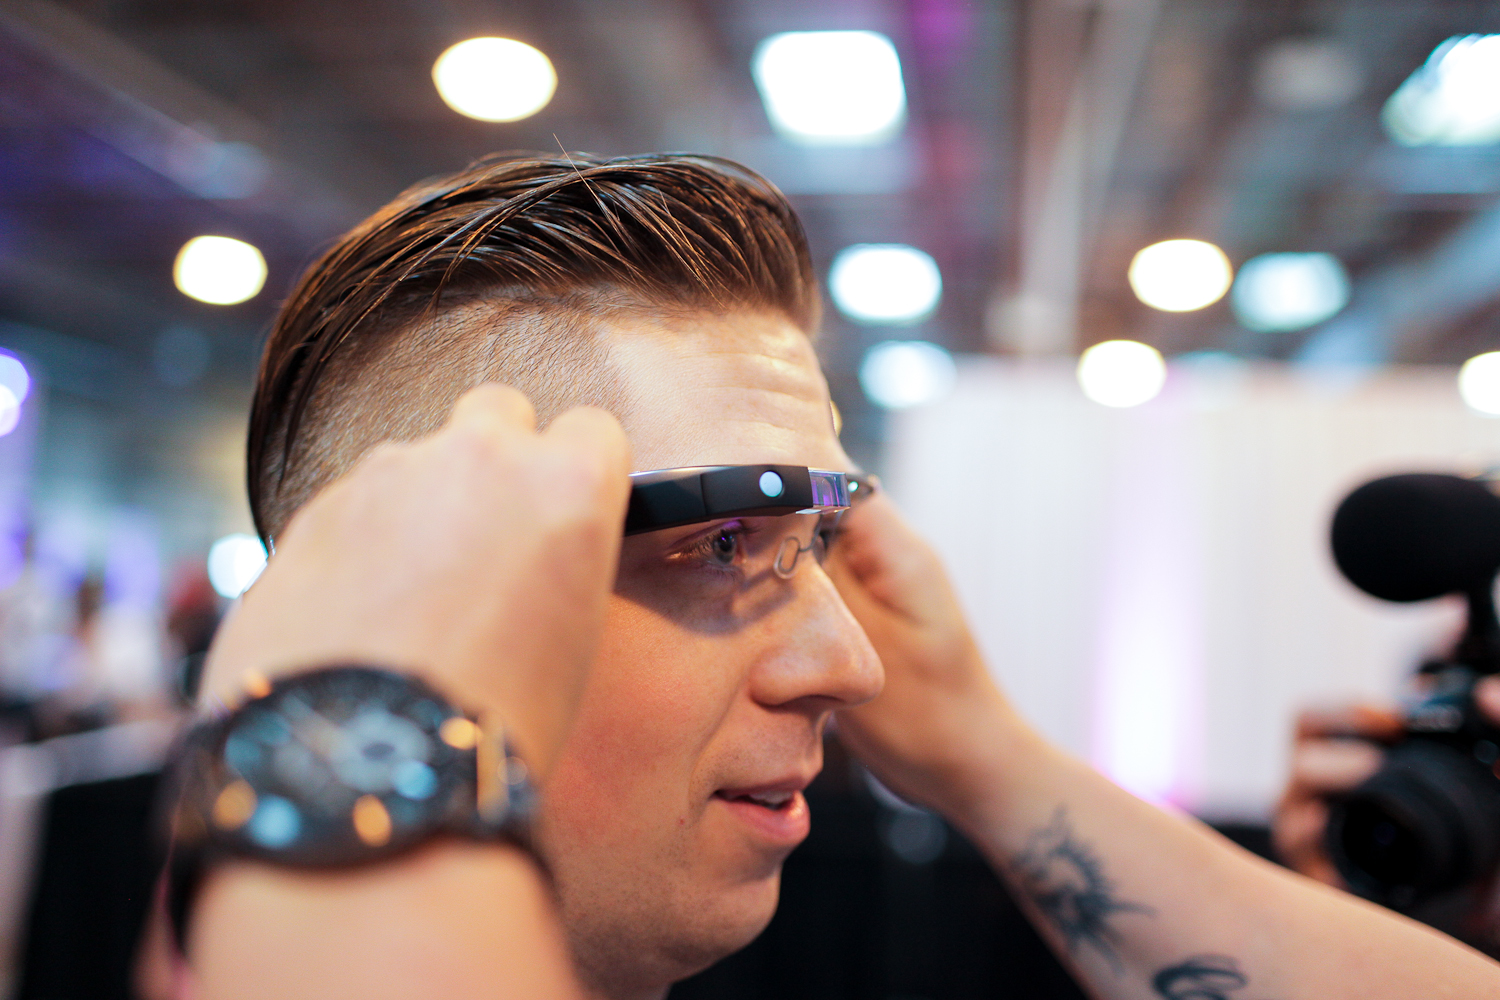 Google Glass being tested at the first ever Vlogger Fair in Seattle Saturday, June 8th at the Port of Seattle Terminal 5.